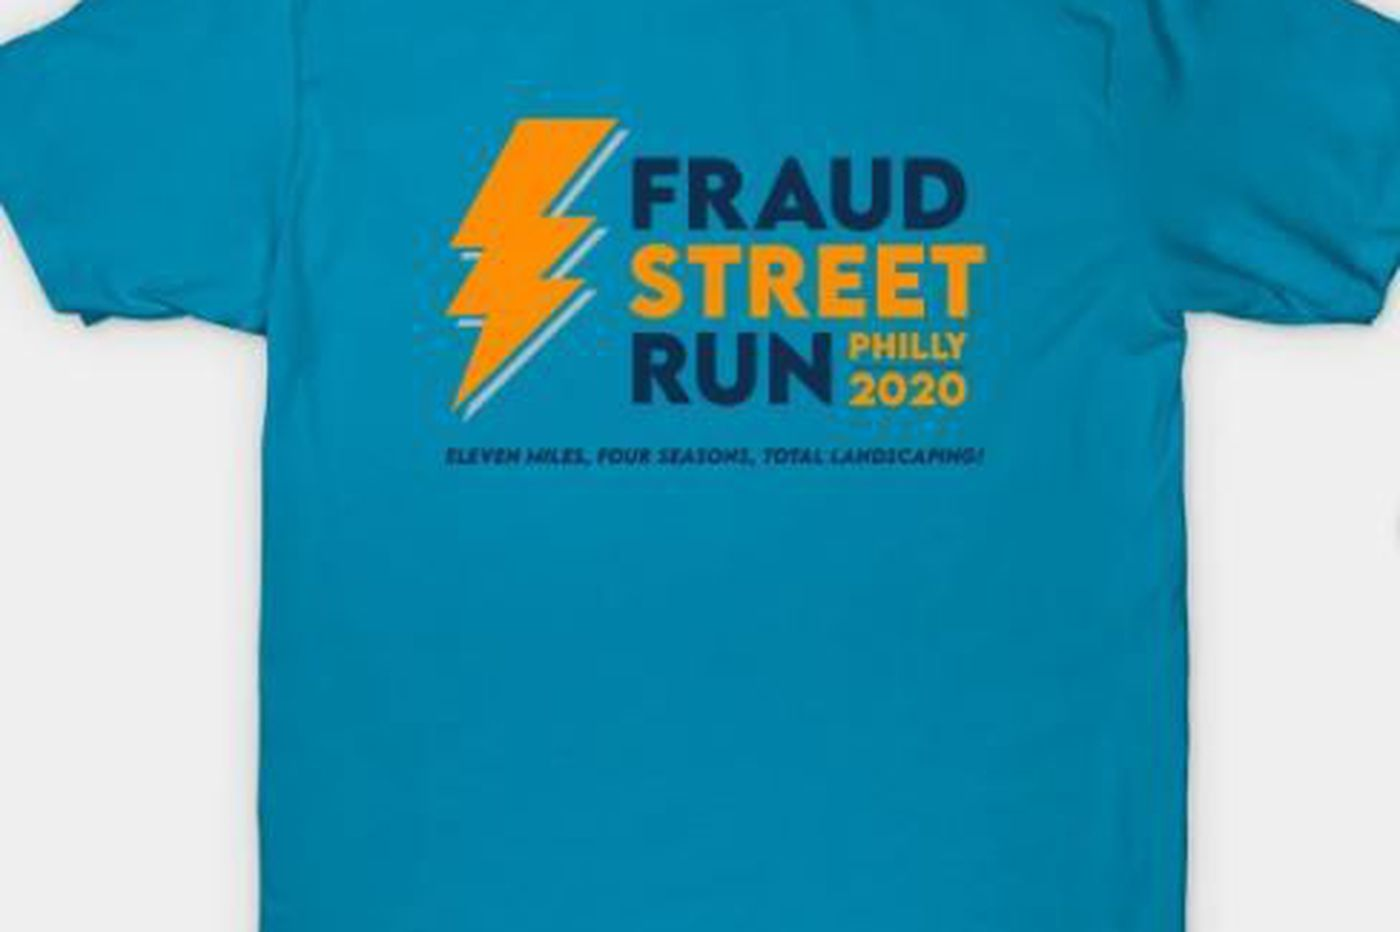 Too popular, the Fraud Street Run inspired by the Four Seasons Total Landscaping press conference goes entirely virtual and raises more than $19k